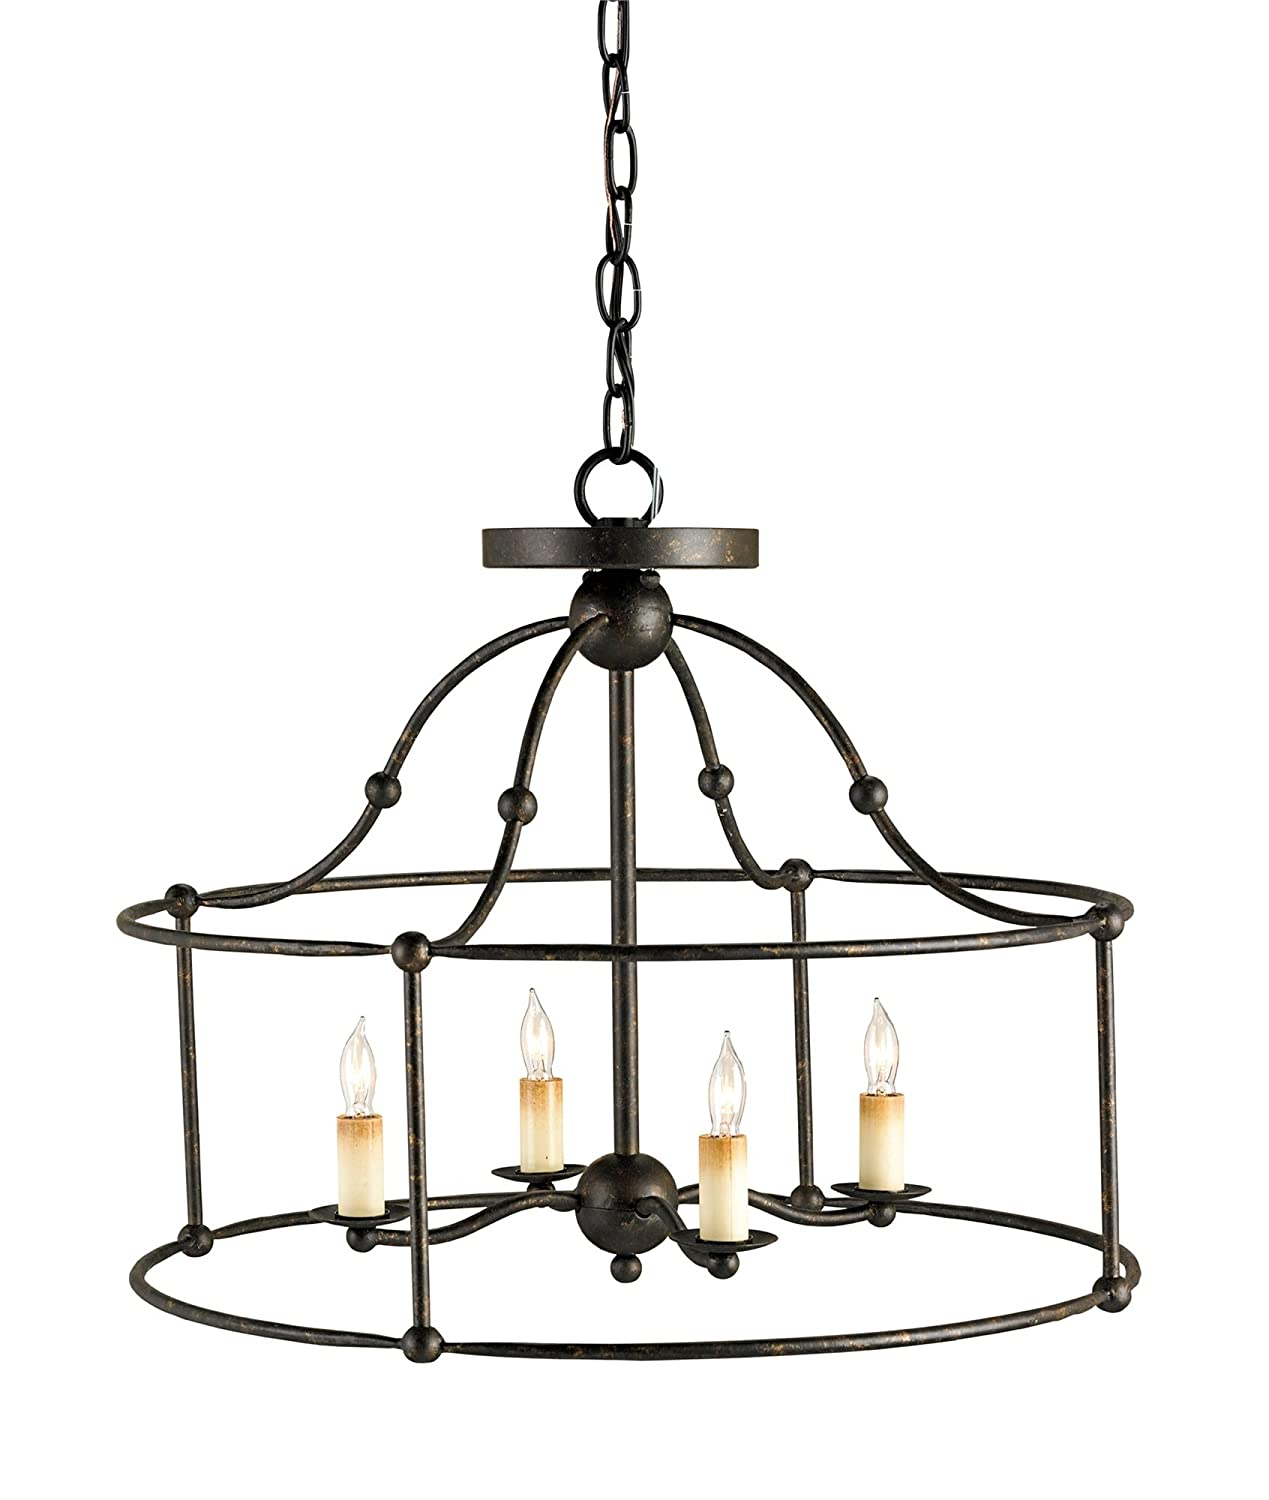 productdetail company lighting tangiers htm lacquer zoom and one nickel currey copper pendant hover to amber light